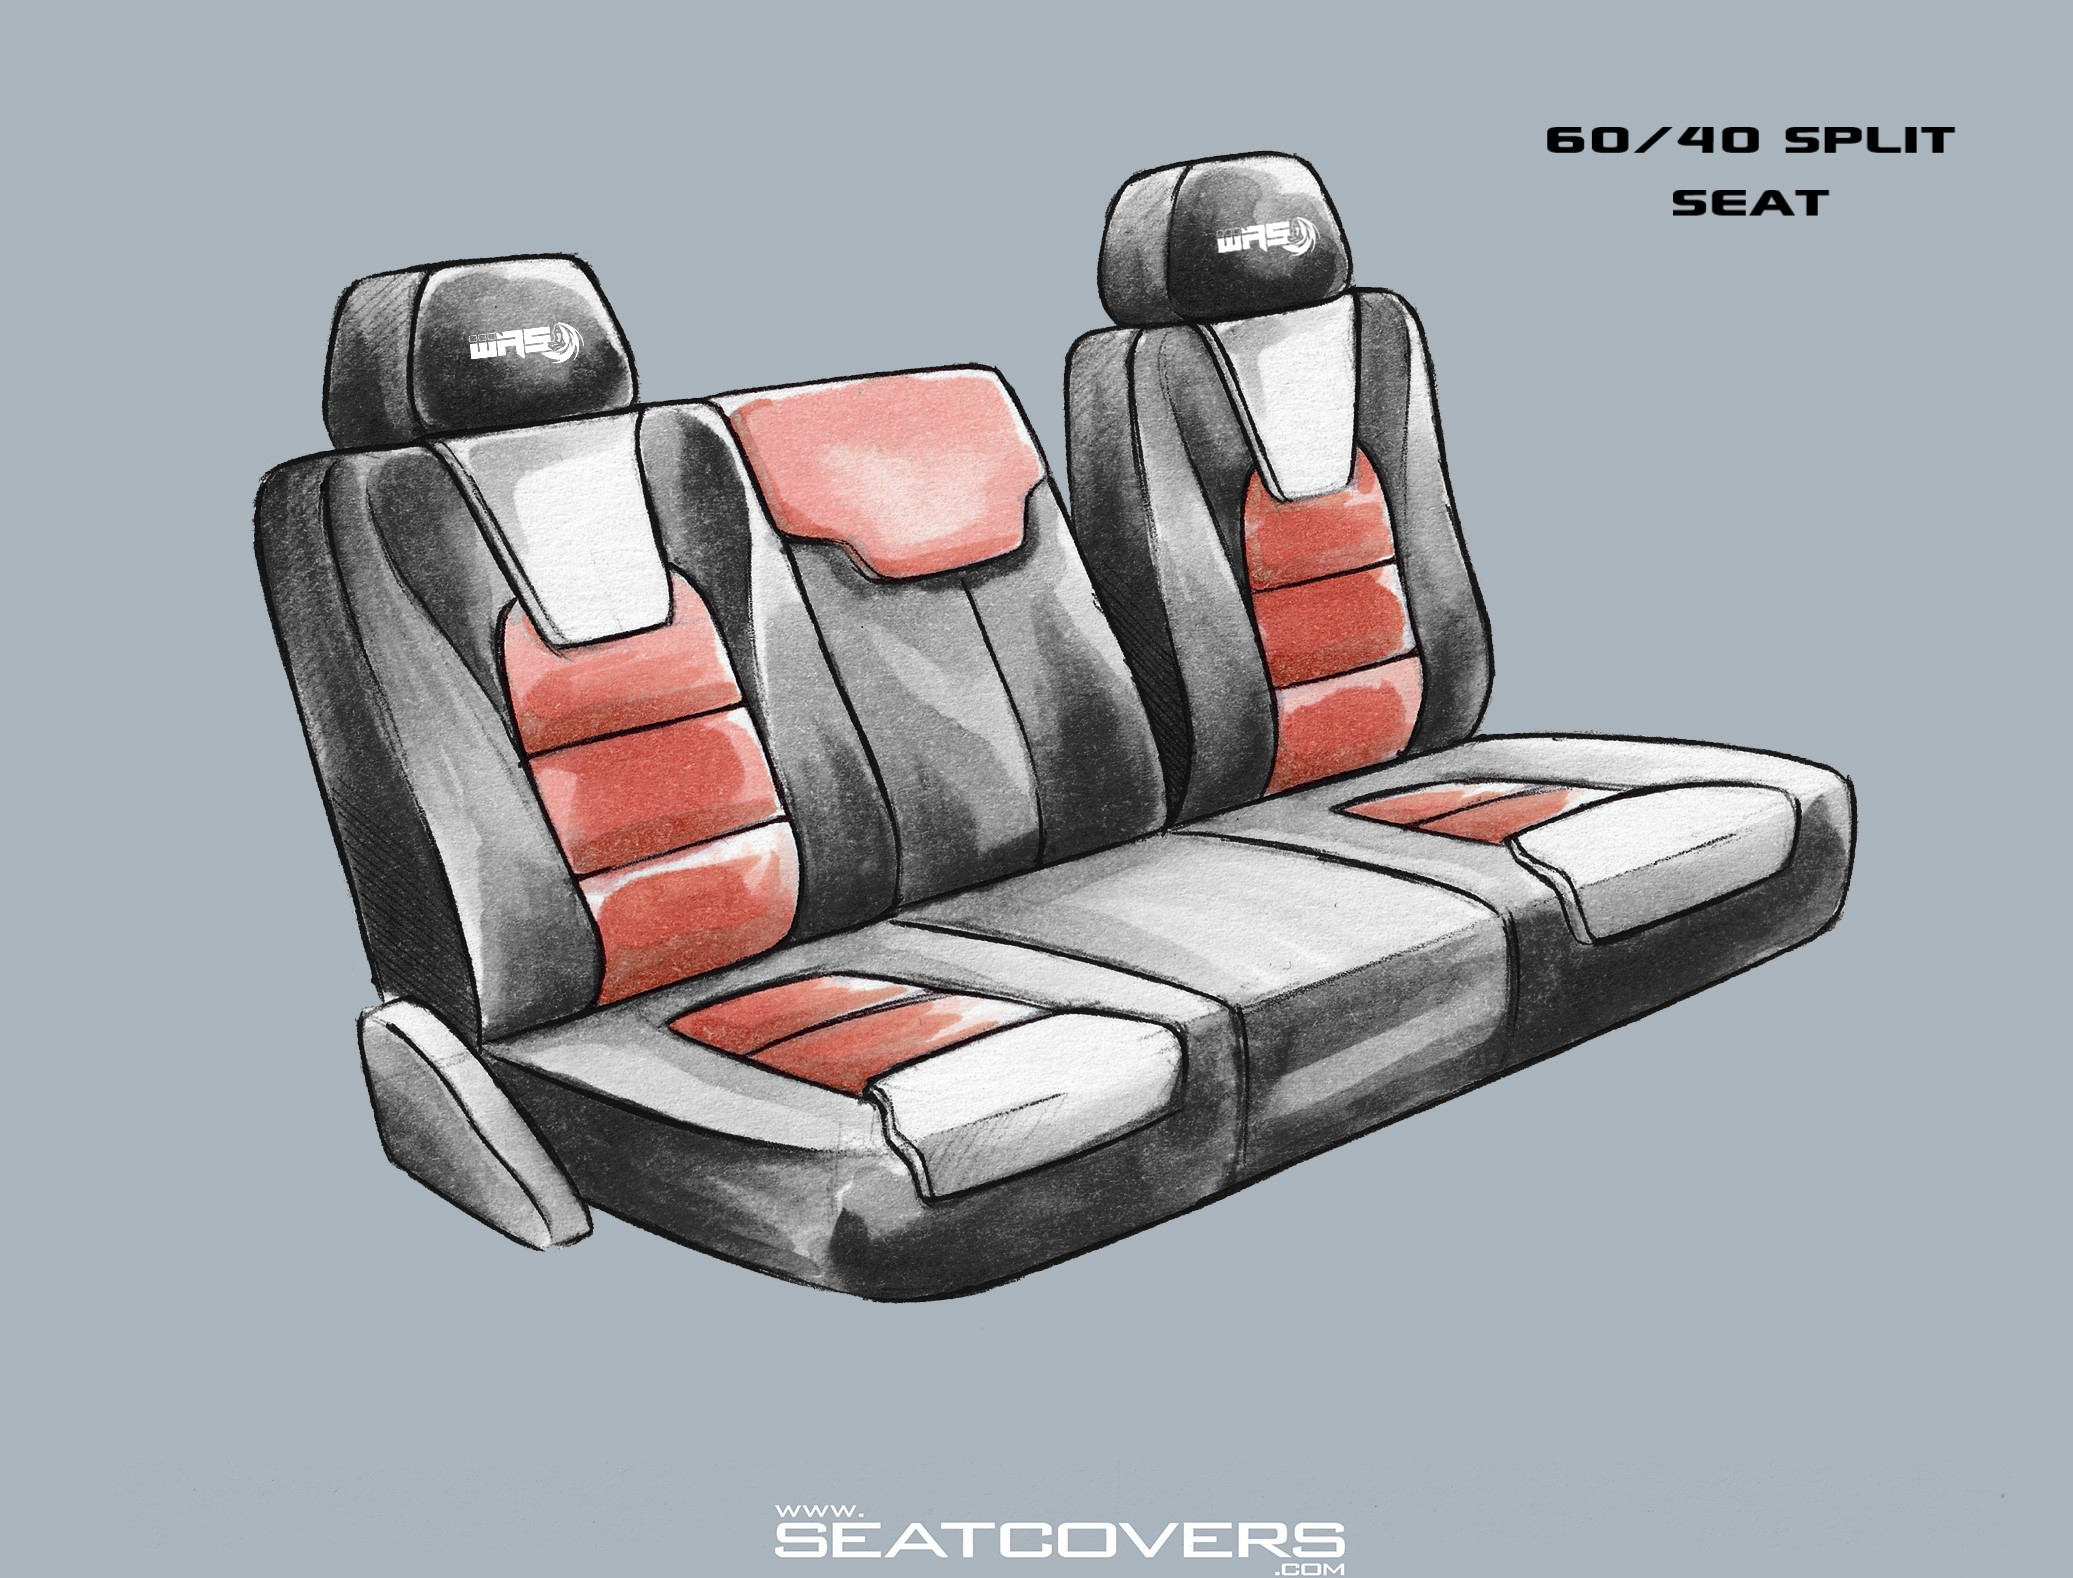 Ford F150 Seat Covers For Rear Ford Truck Seats - seatcovers.com